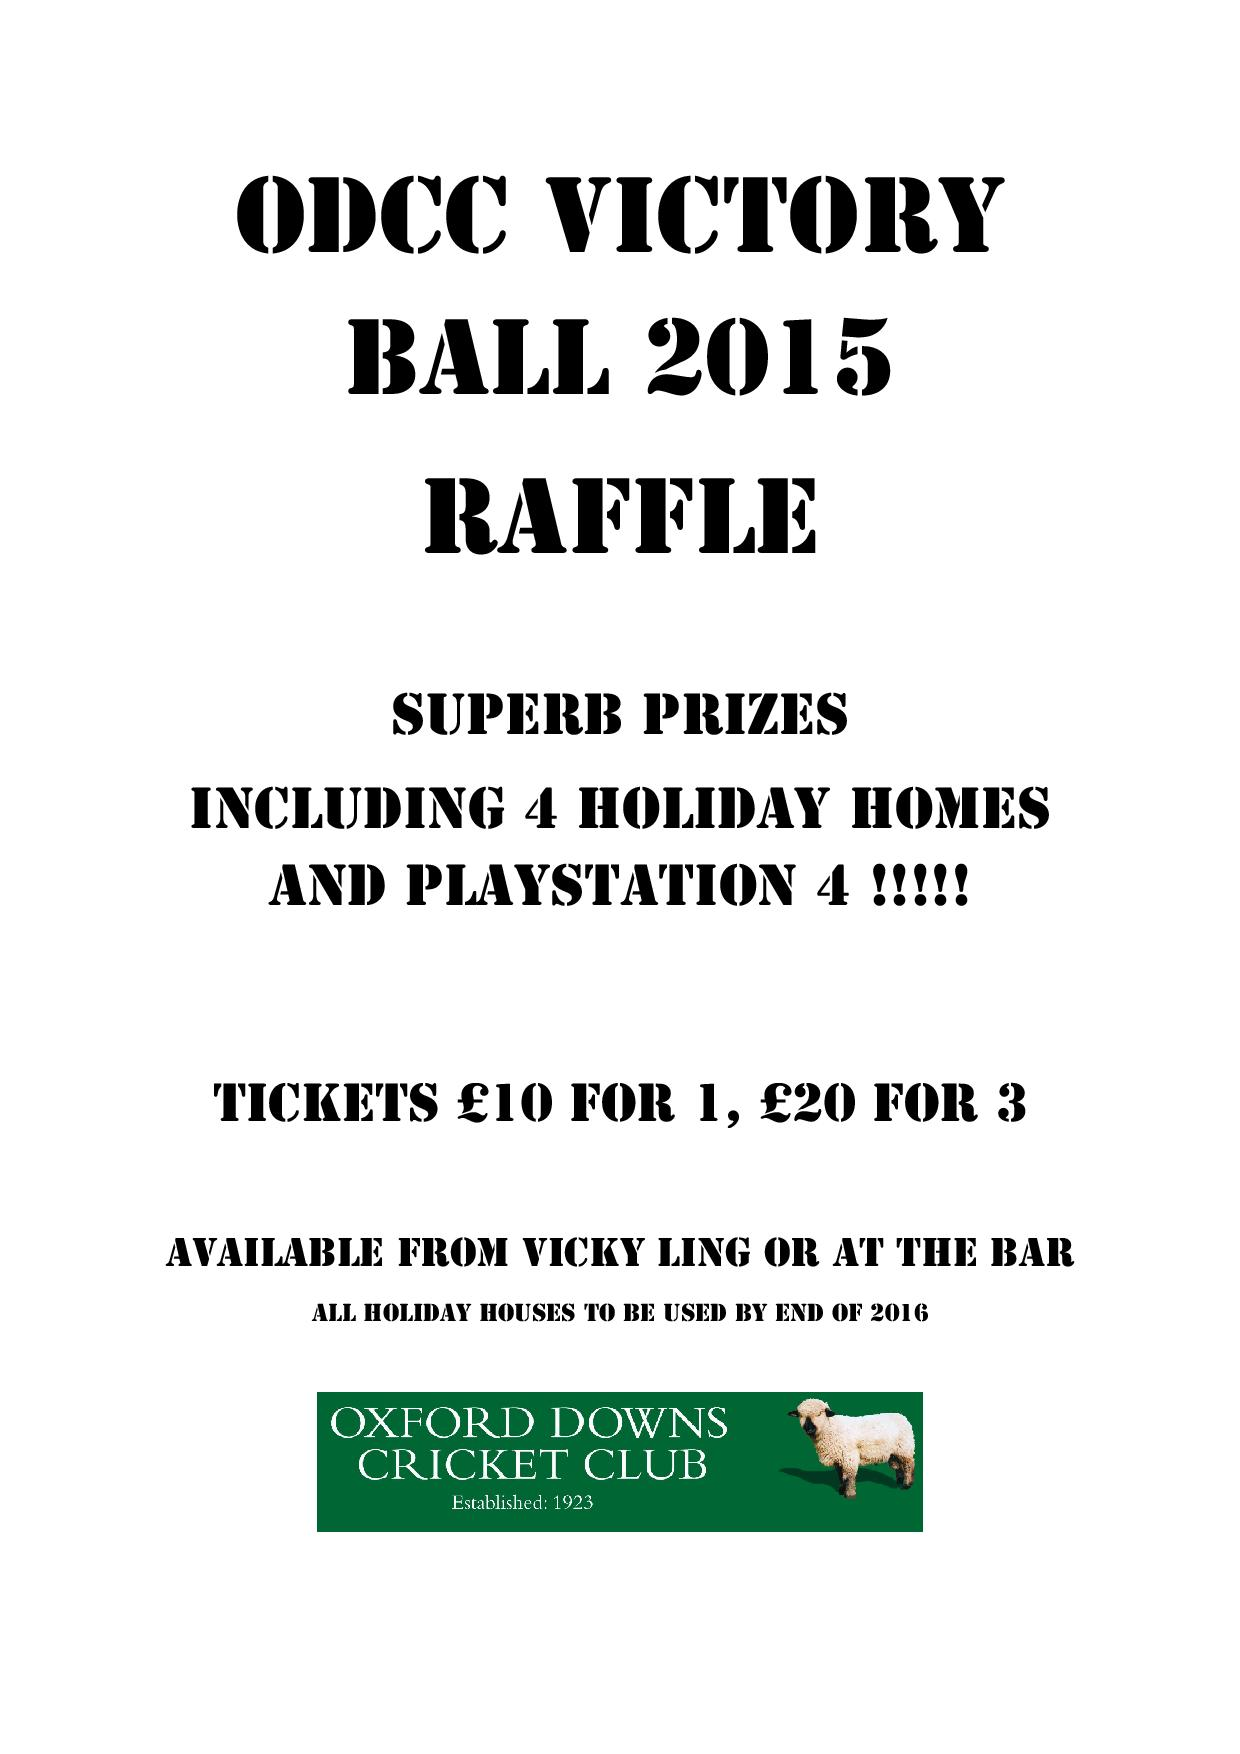 Full list of ODCC Ball 2015 Raffle Prizes